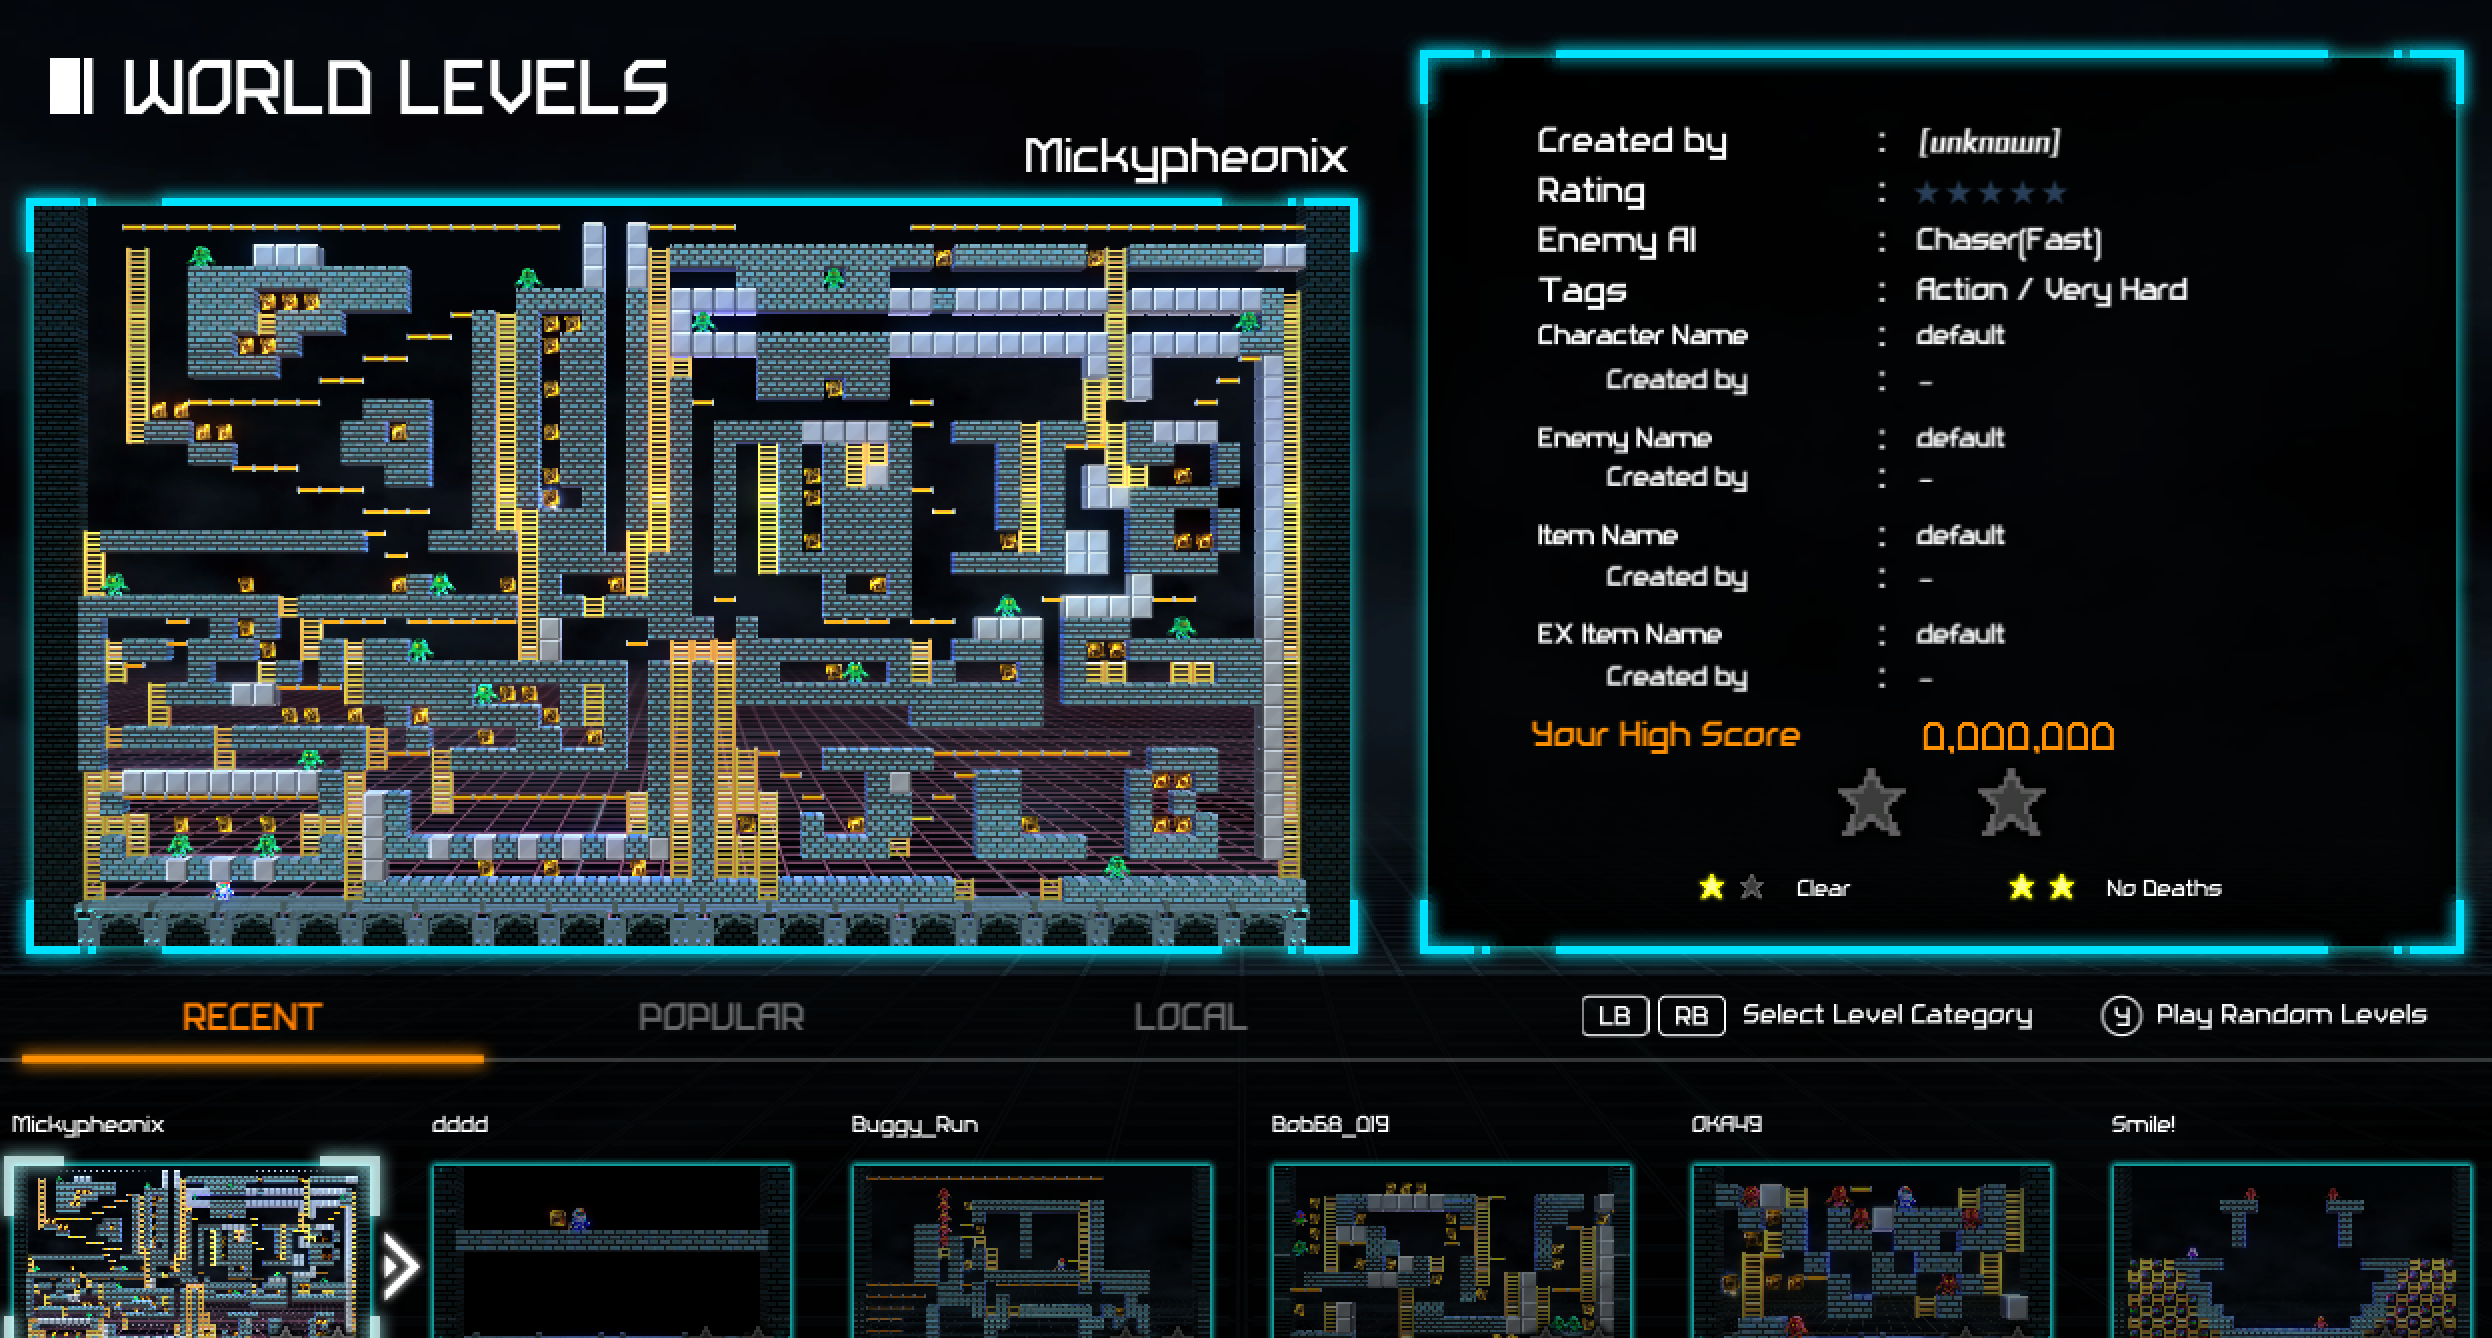 Endless possibilities await players when they browse the uploaded levels section of the game.